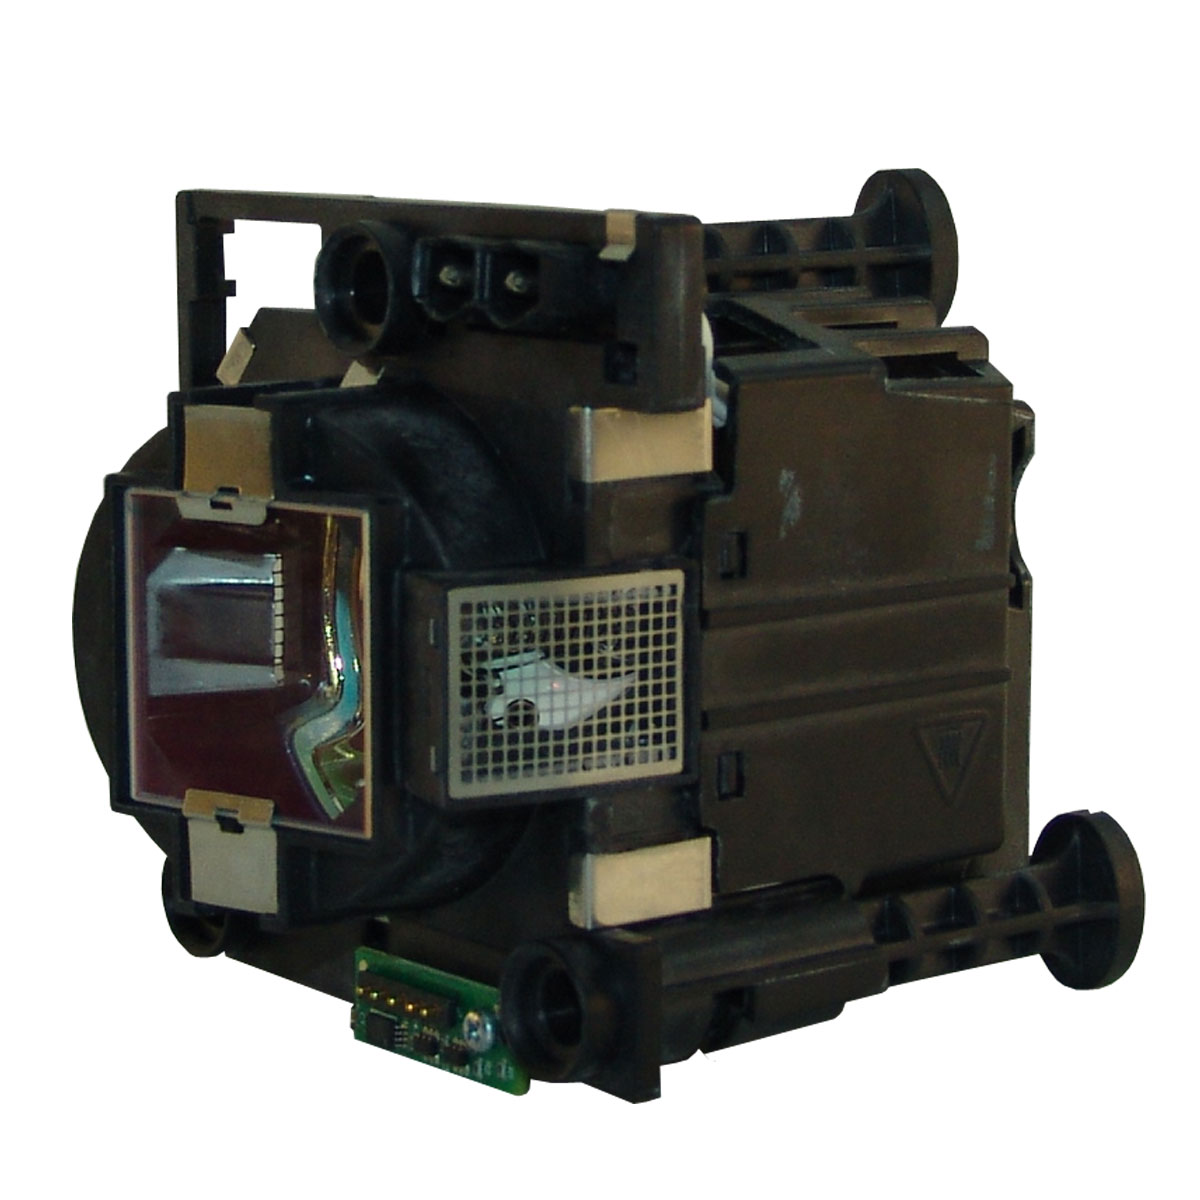 Original Philips Projector Lamp Replacement for Christie Matrix 3000 (Bulb Only) - image 5 of 5